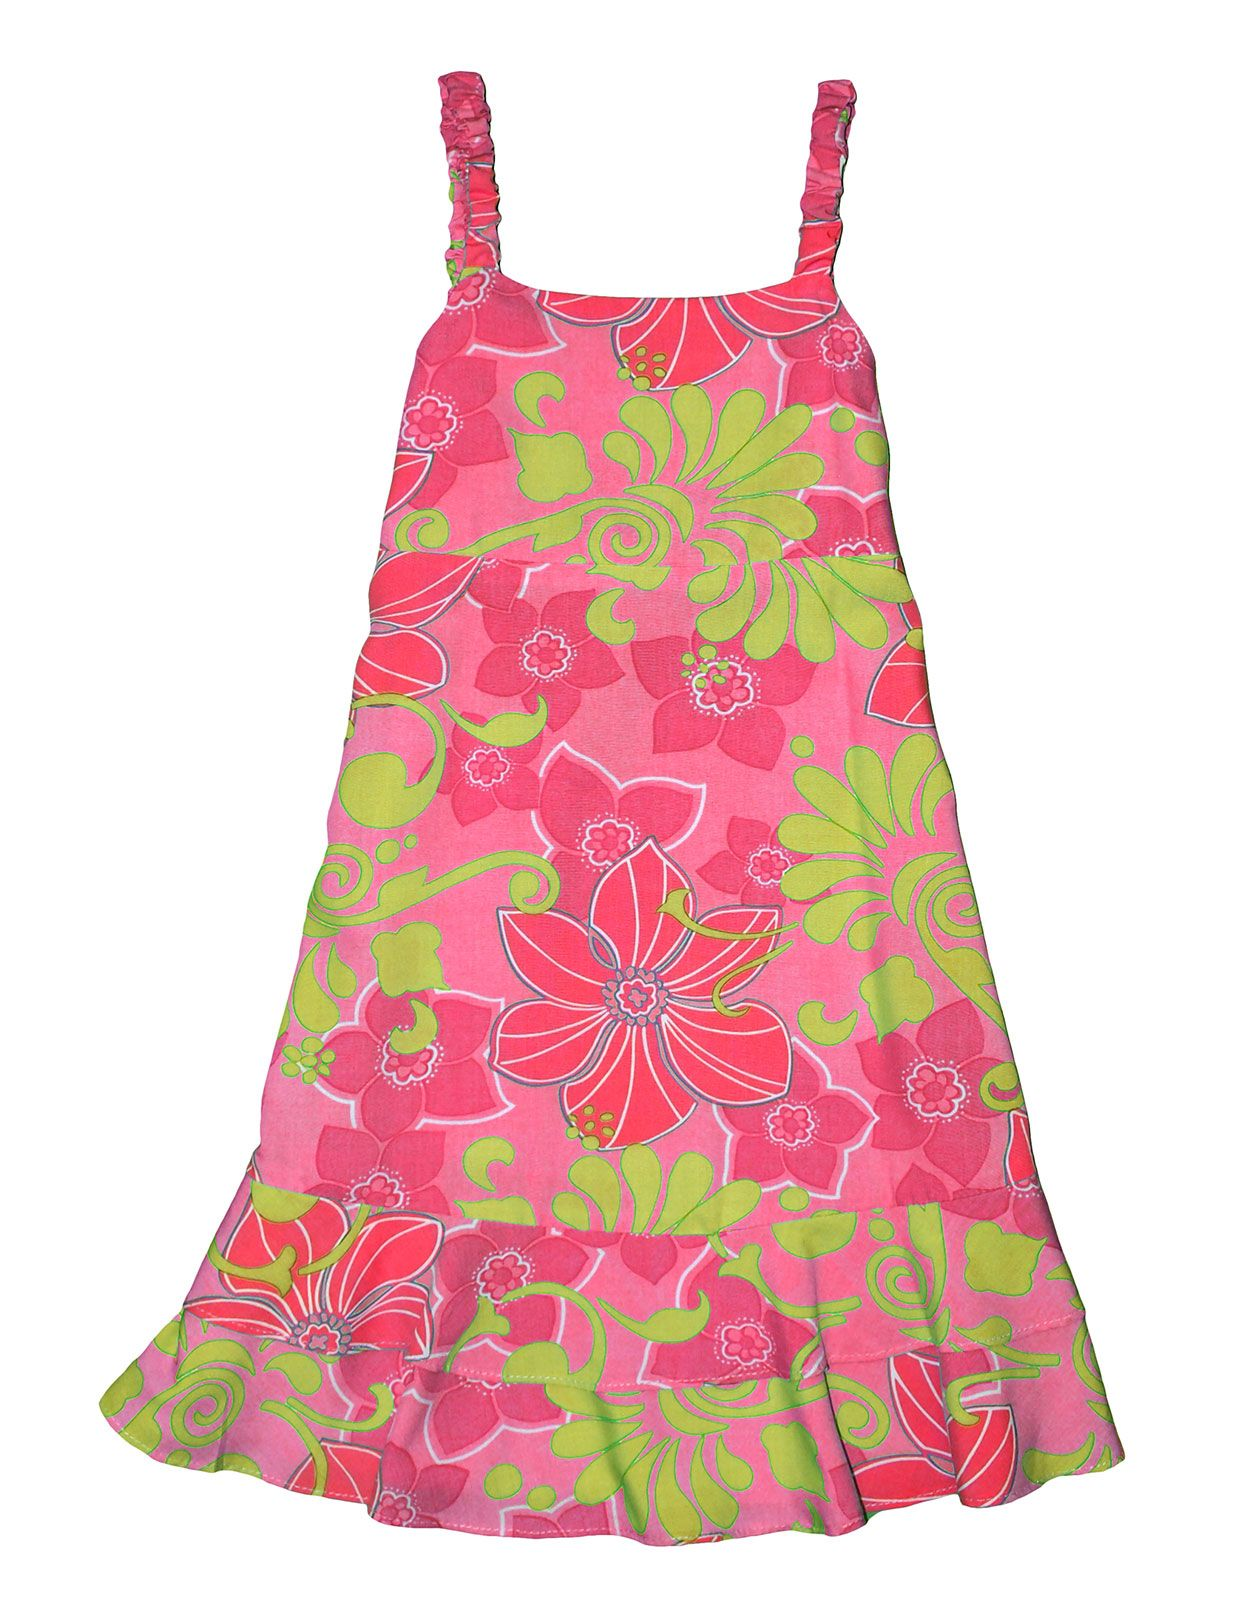 Check out the deal on Girls Bungee Dress Plumeria Dream at Shaka ...